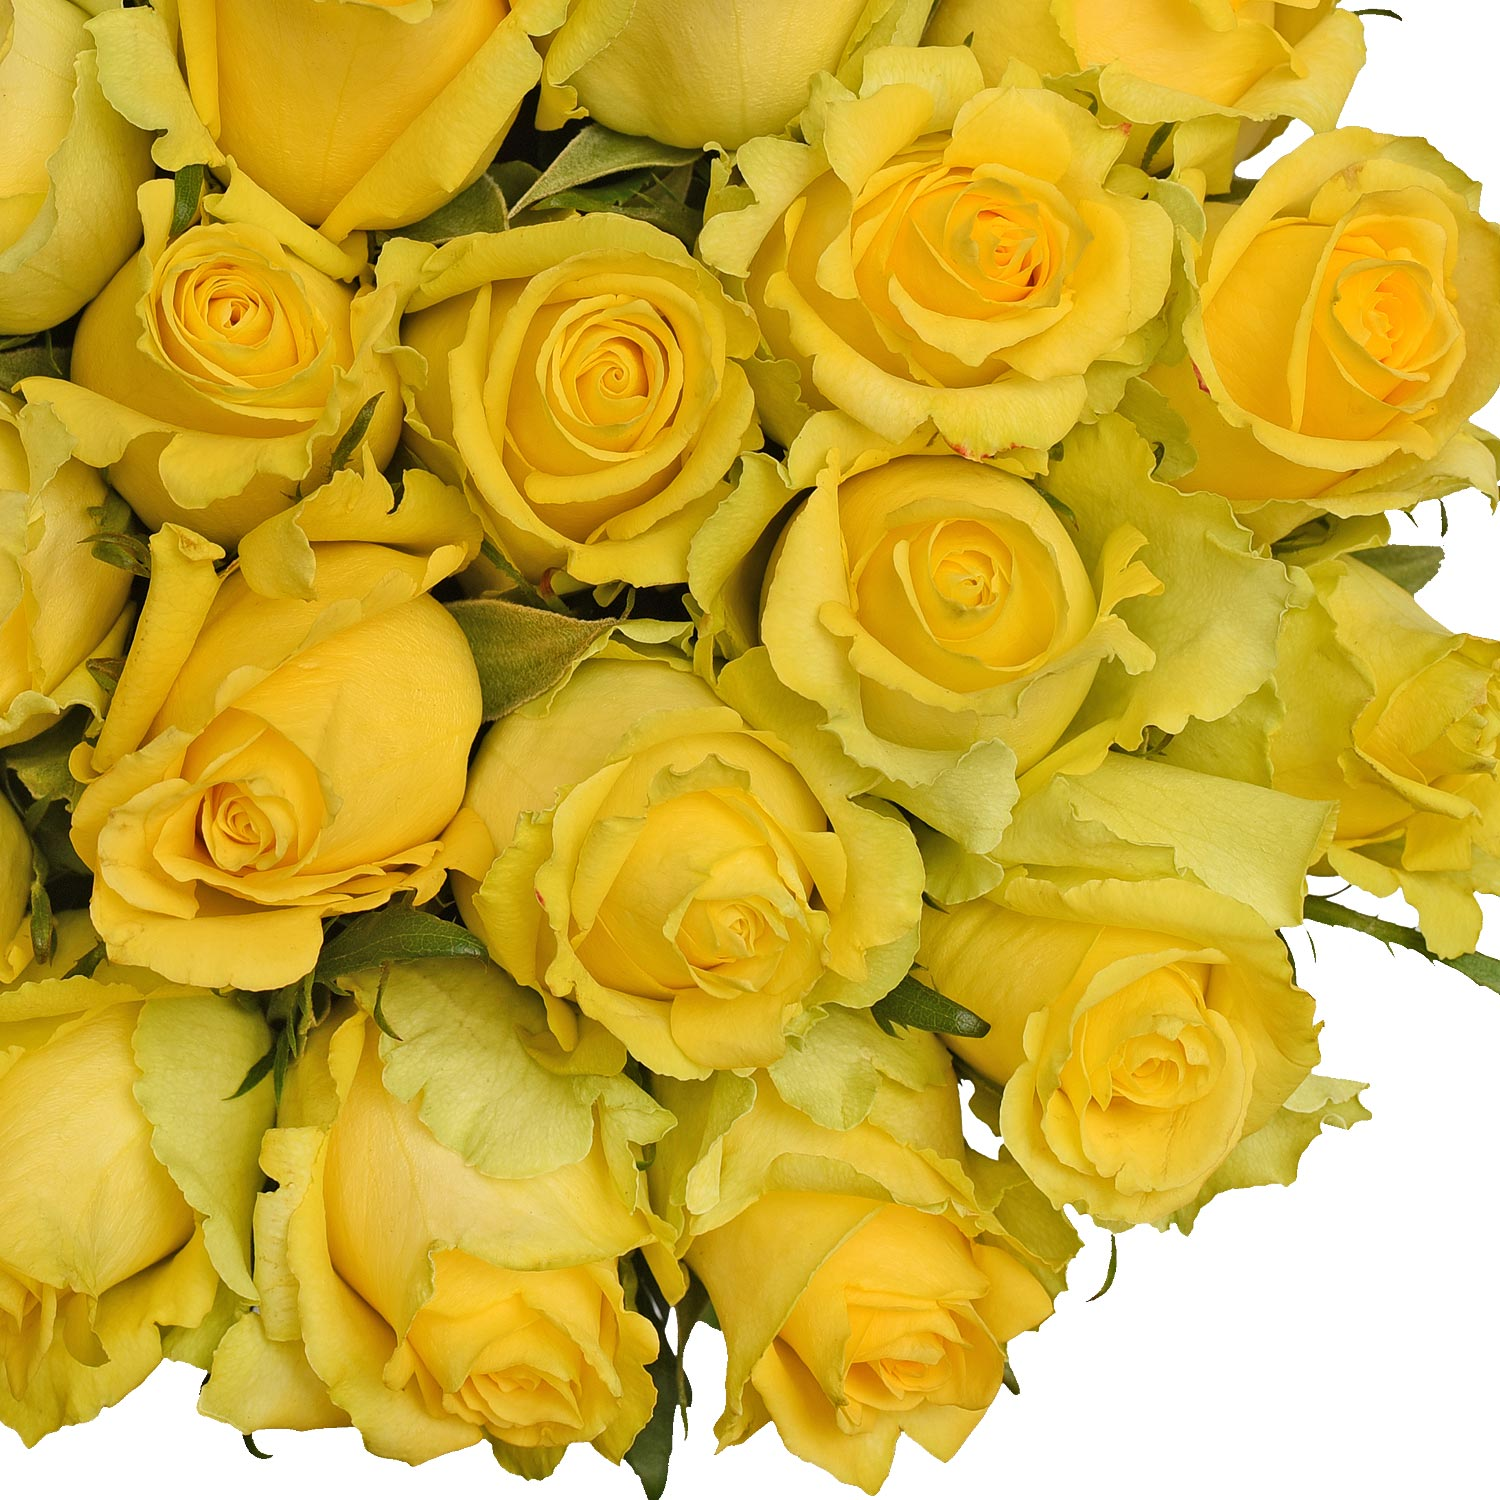 Natural Fresh Flowers Yellow Roses 20 100 Stems Walmart